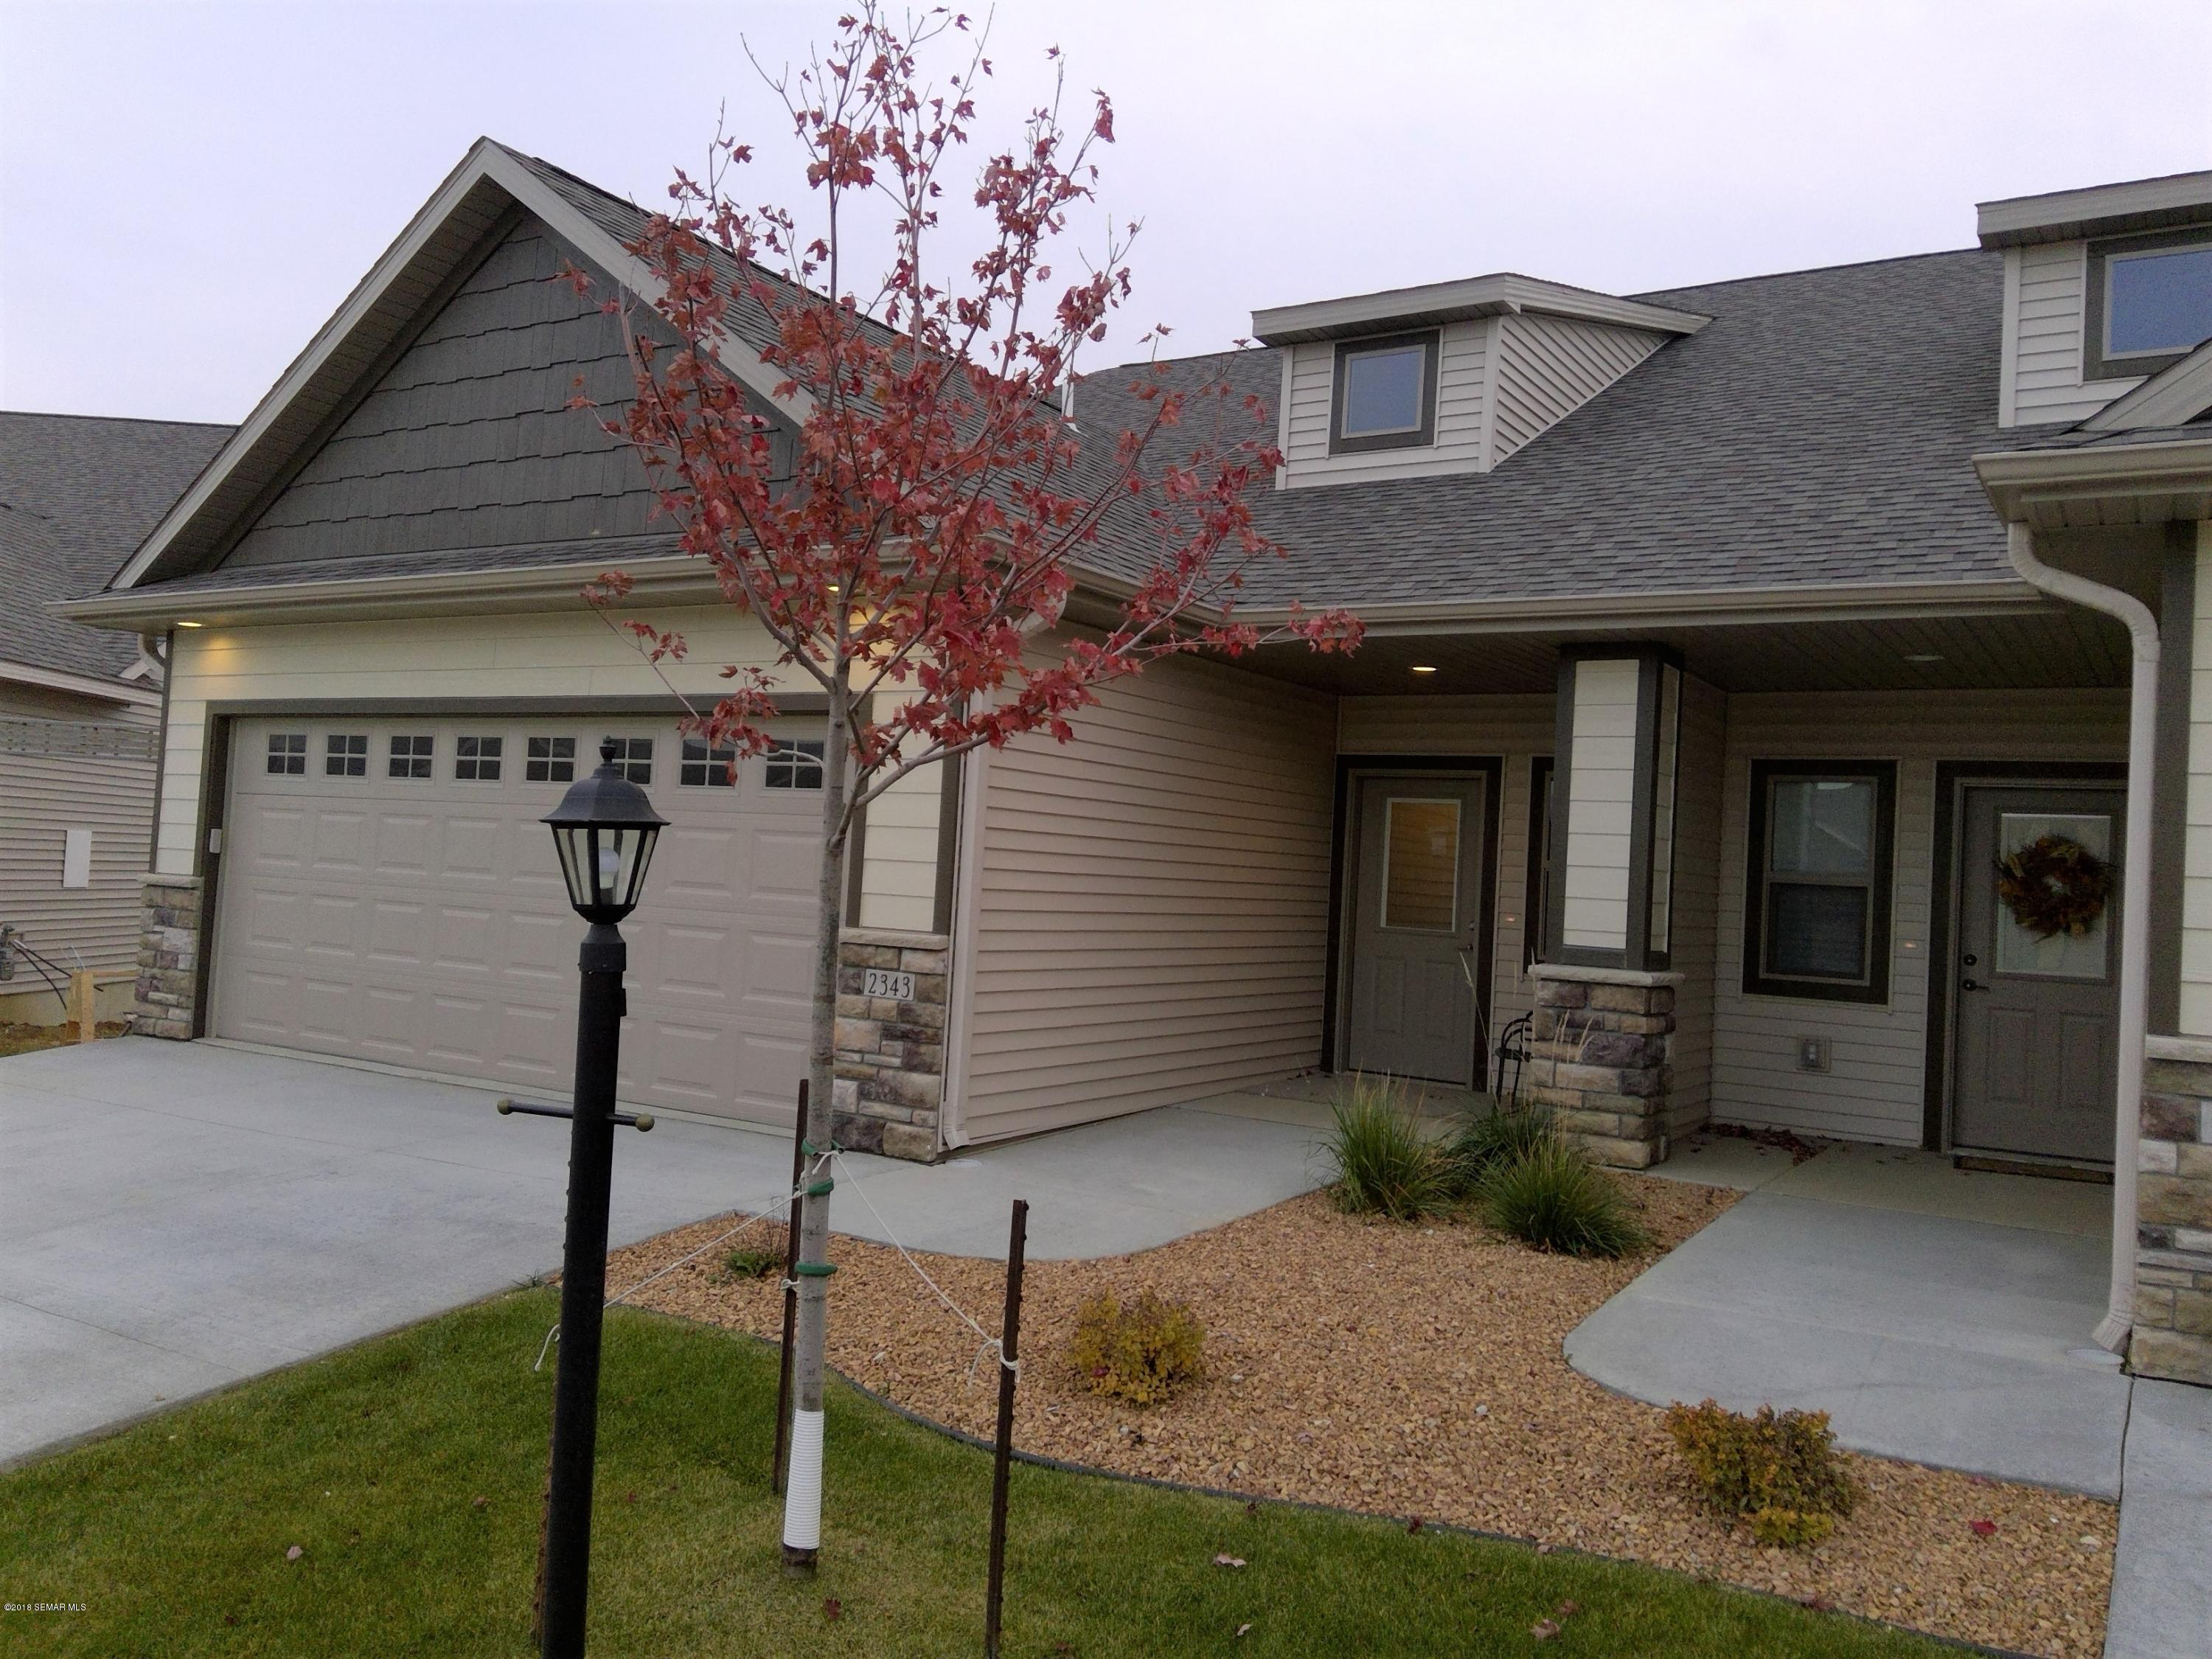 2343 Superior,Rochester,Minnesota 55901,4 Bedrooms Bedrooms,3 BathroomsBathrooms,Townhouse,Superior,4092361